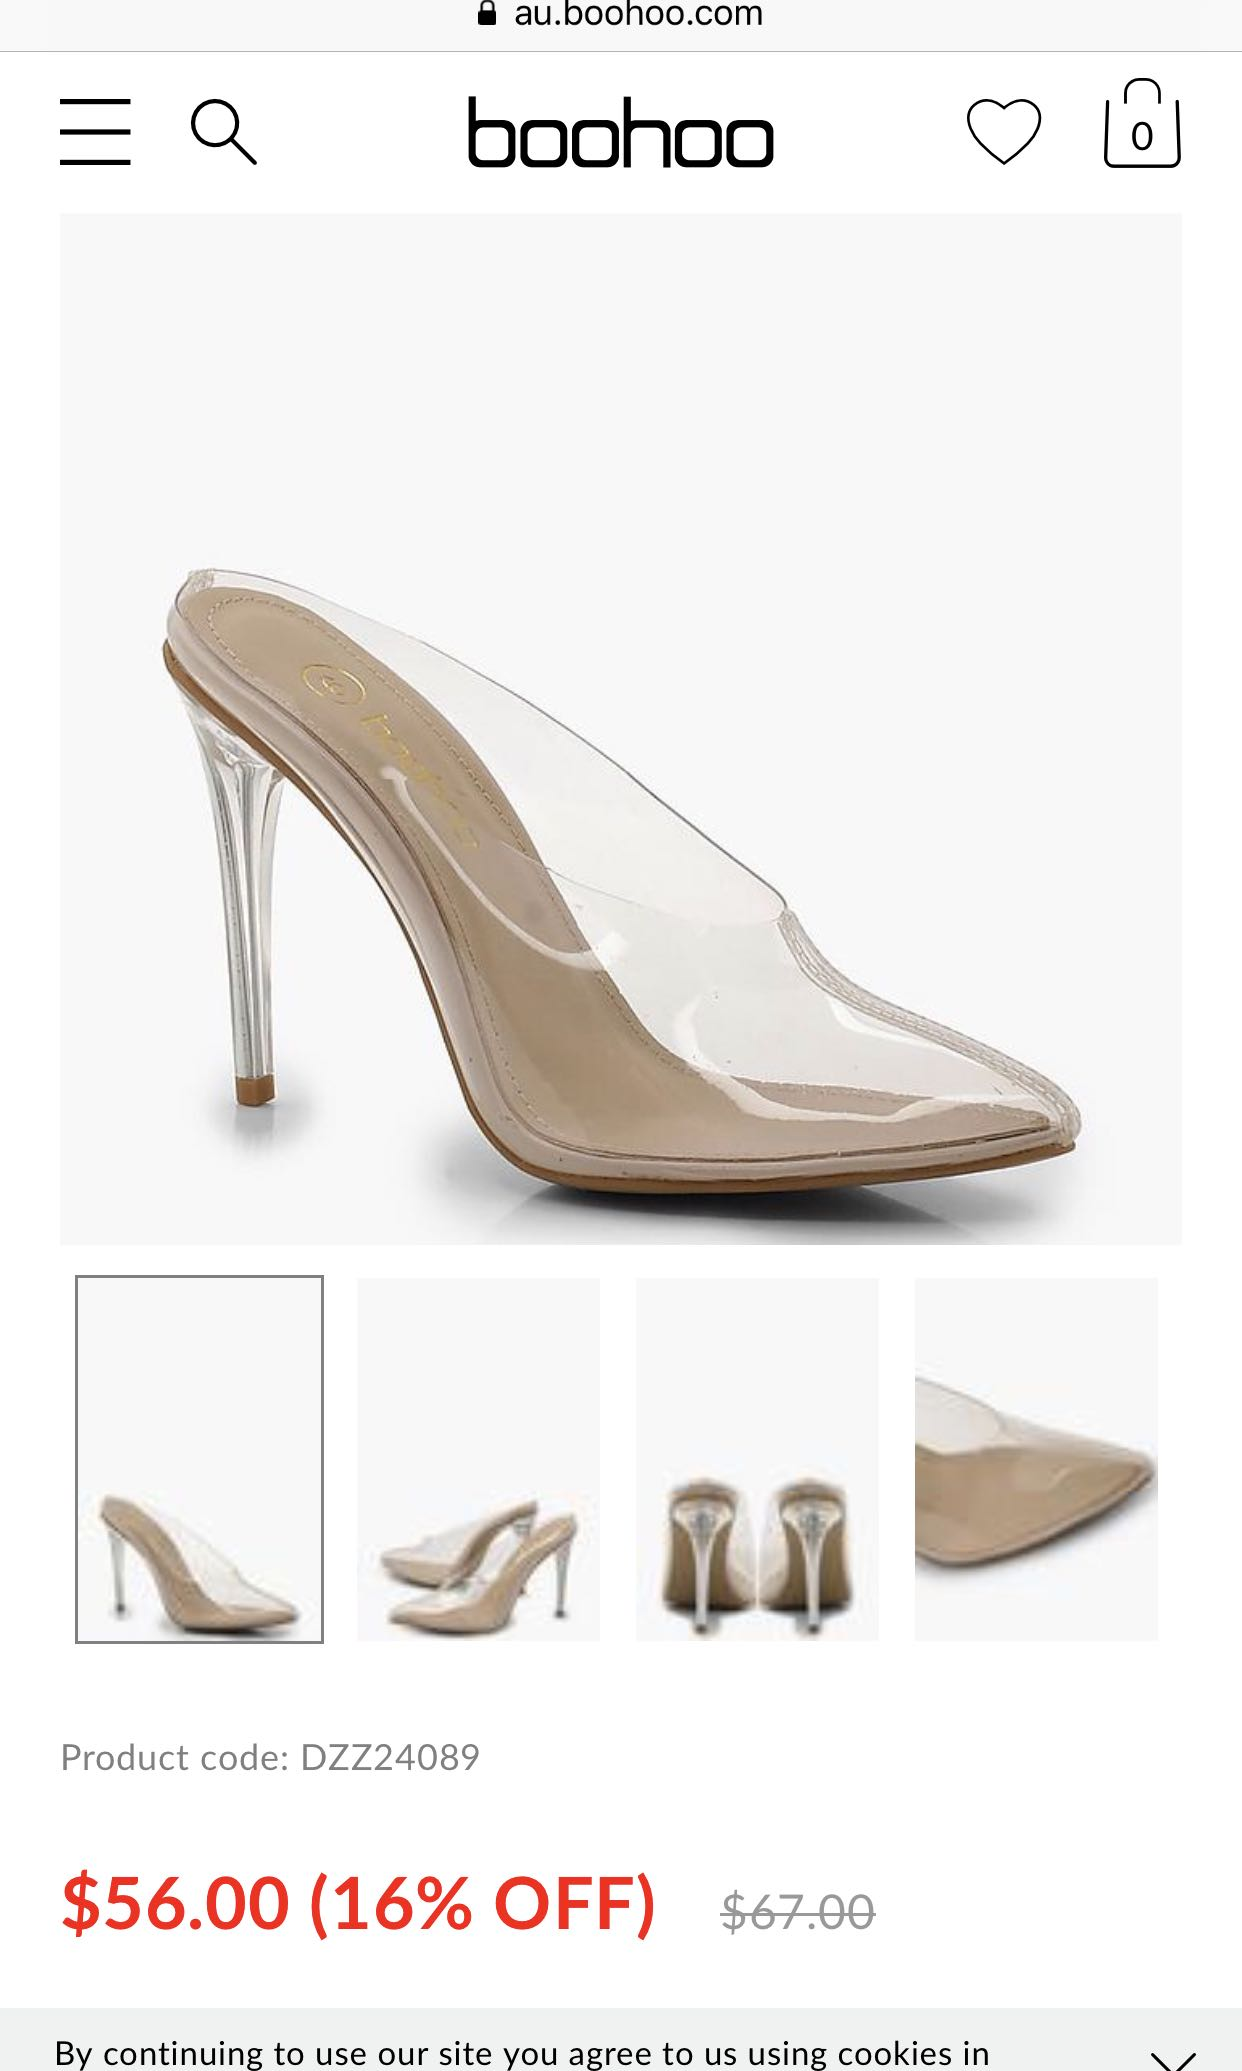 c94aac26d5 Boohoo clear heels, Women's Fashion, Shoes on Carousell